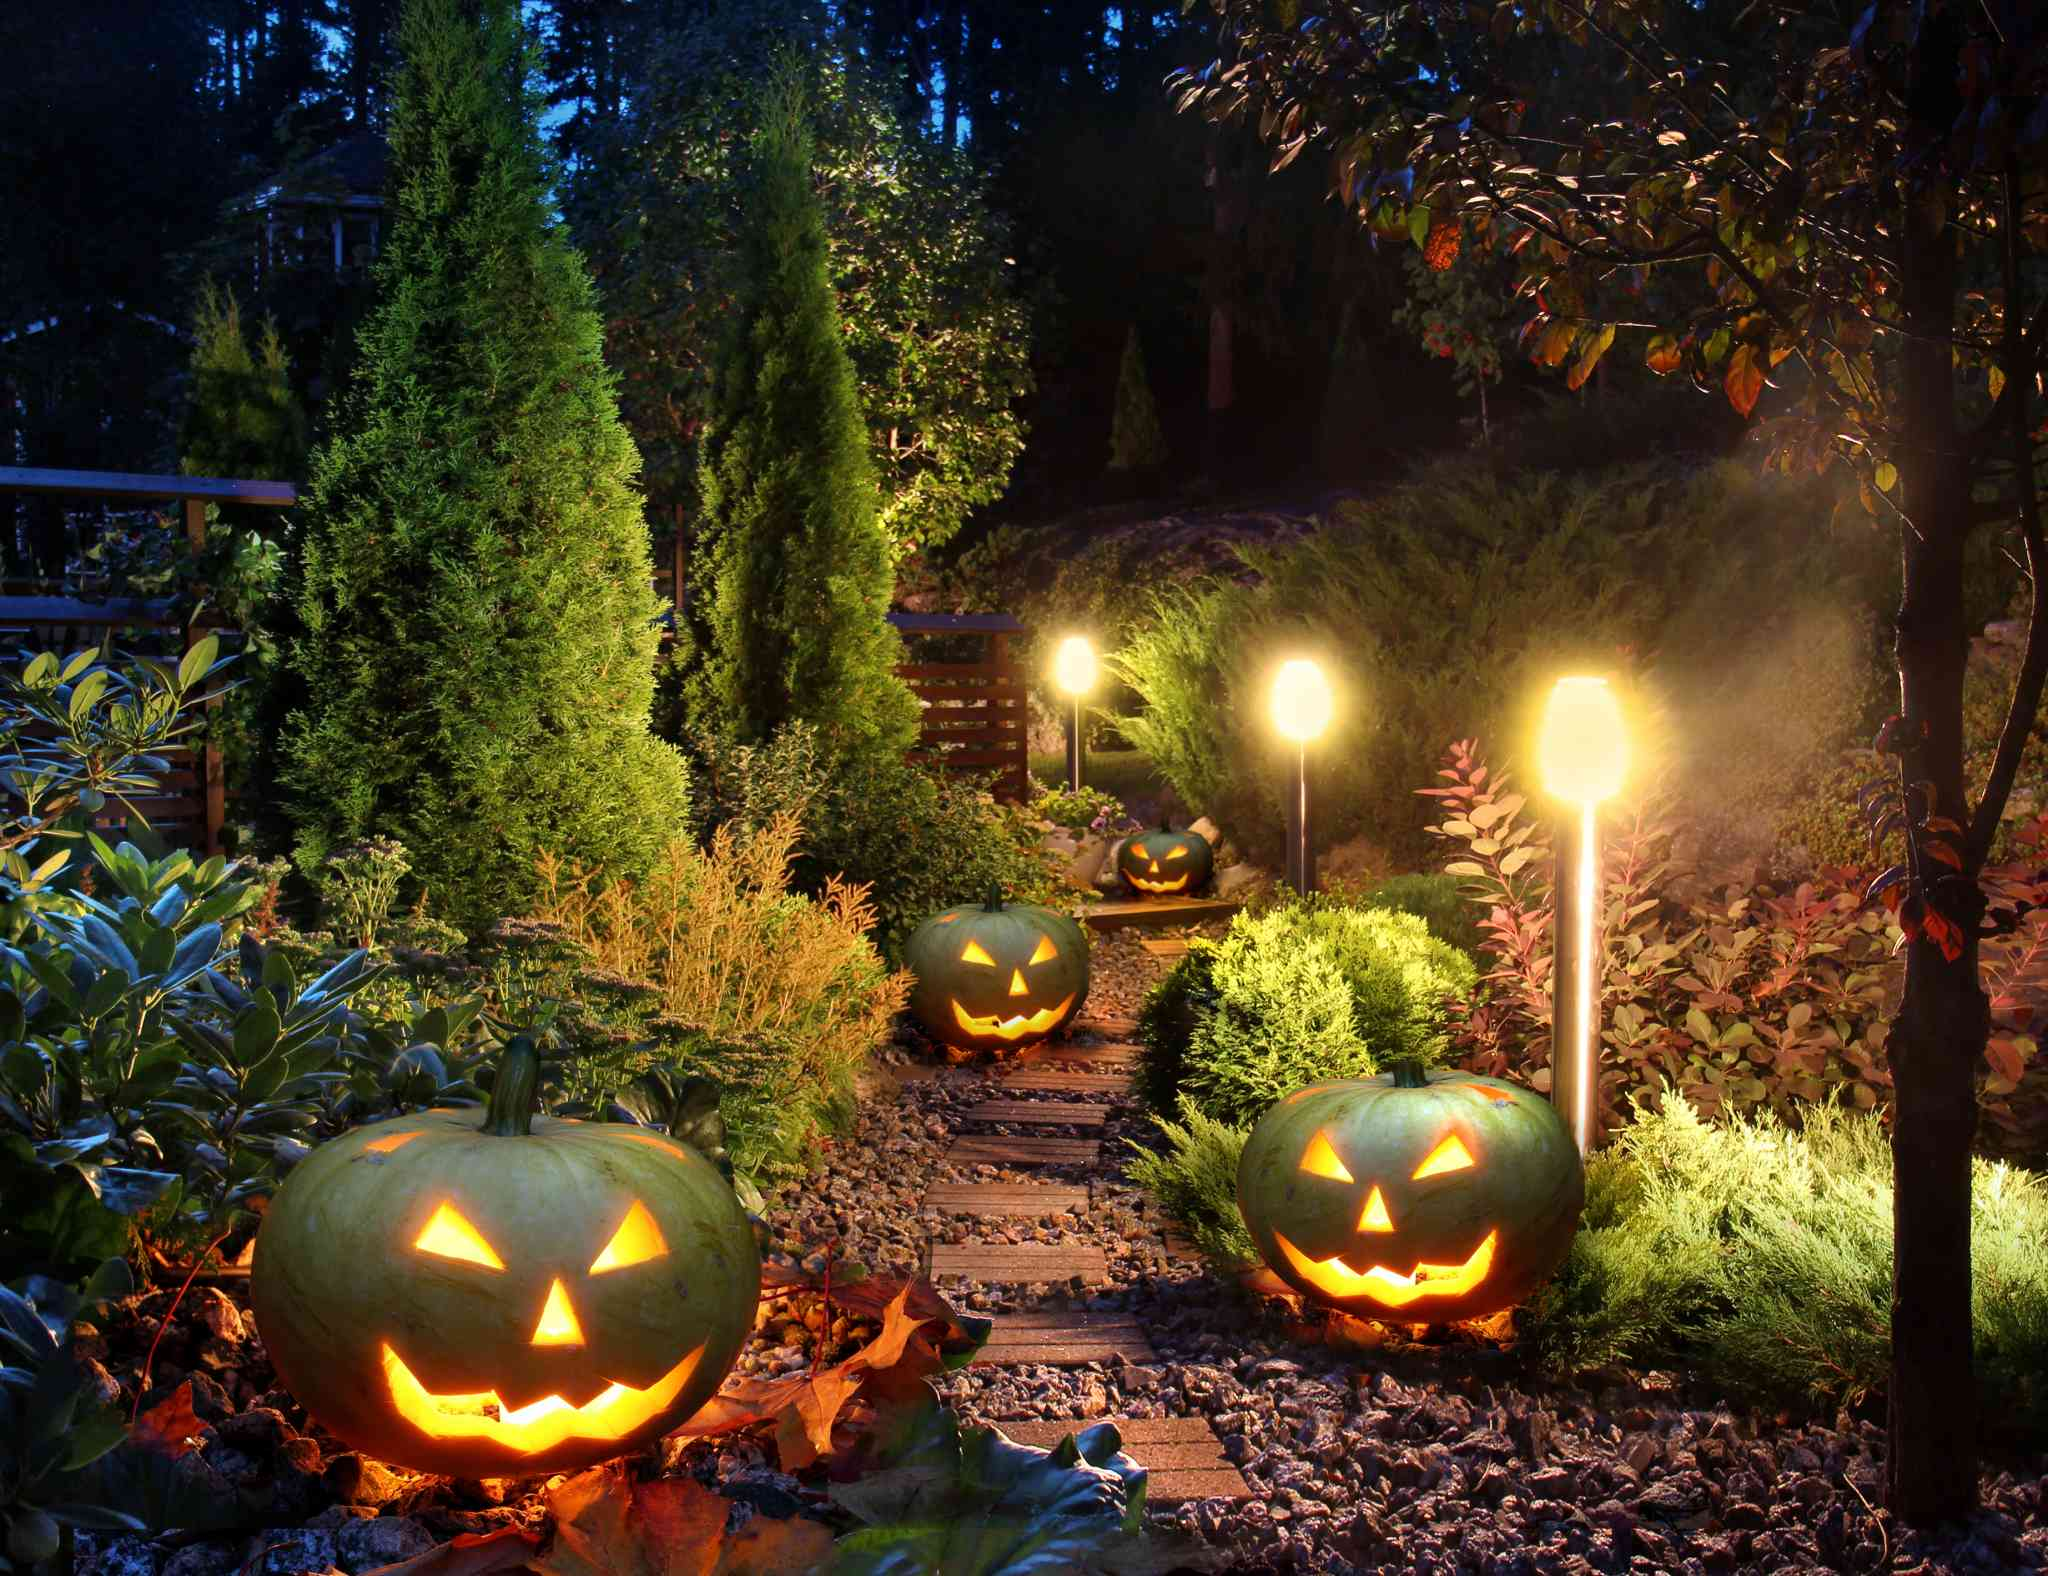 Spooky Outdoor Halloween Decorations